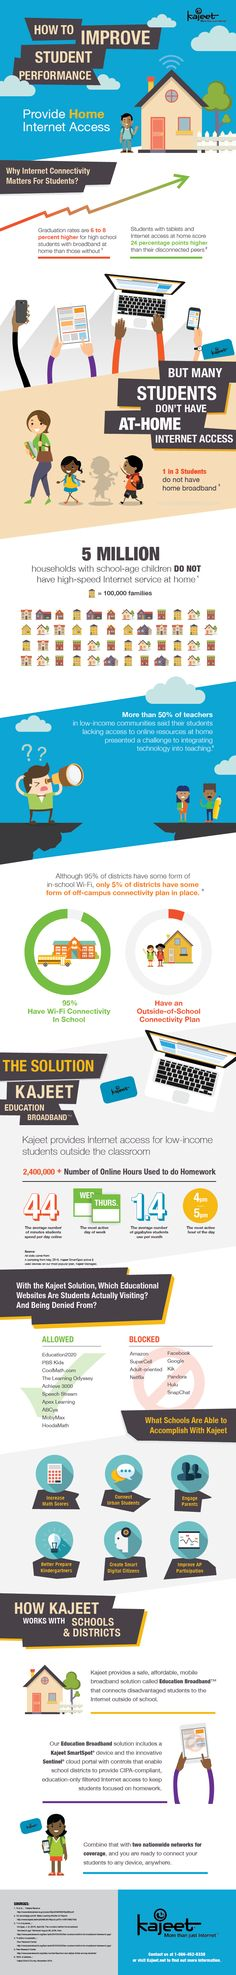 The How to Improve Student Performance Infographic Illustrates the impact home Internet access has on student success; emphasize the enormous size